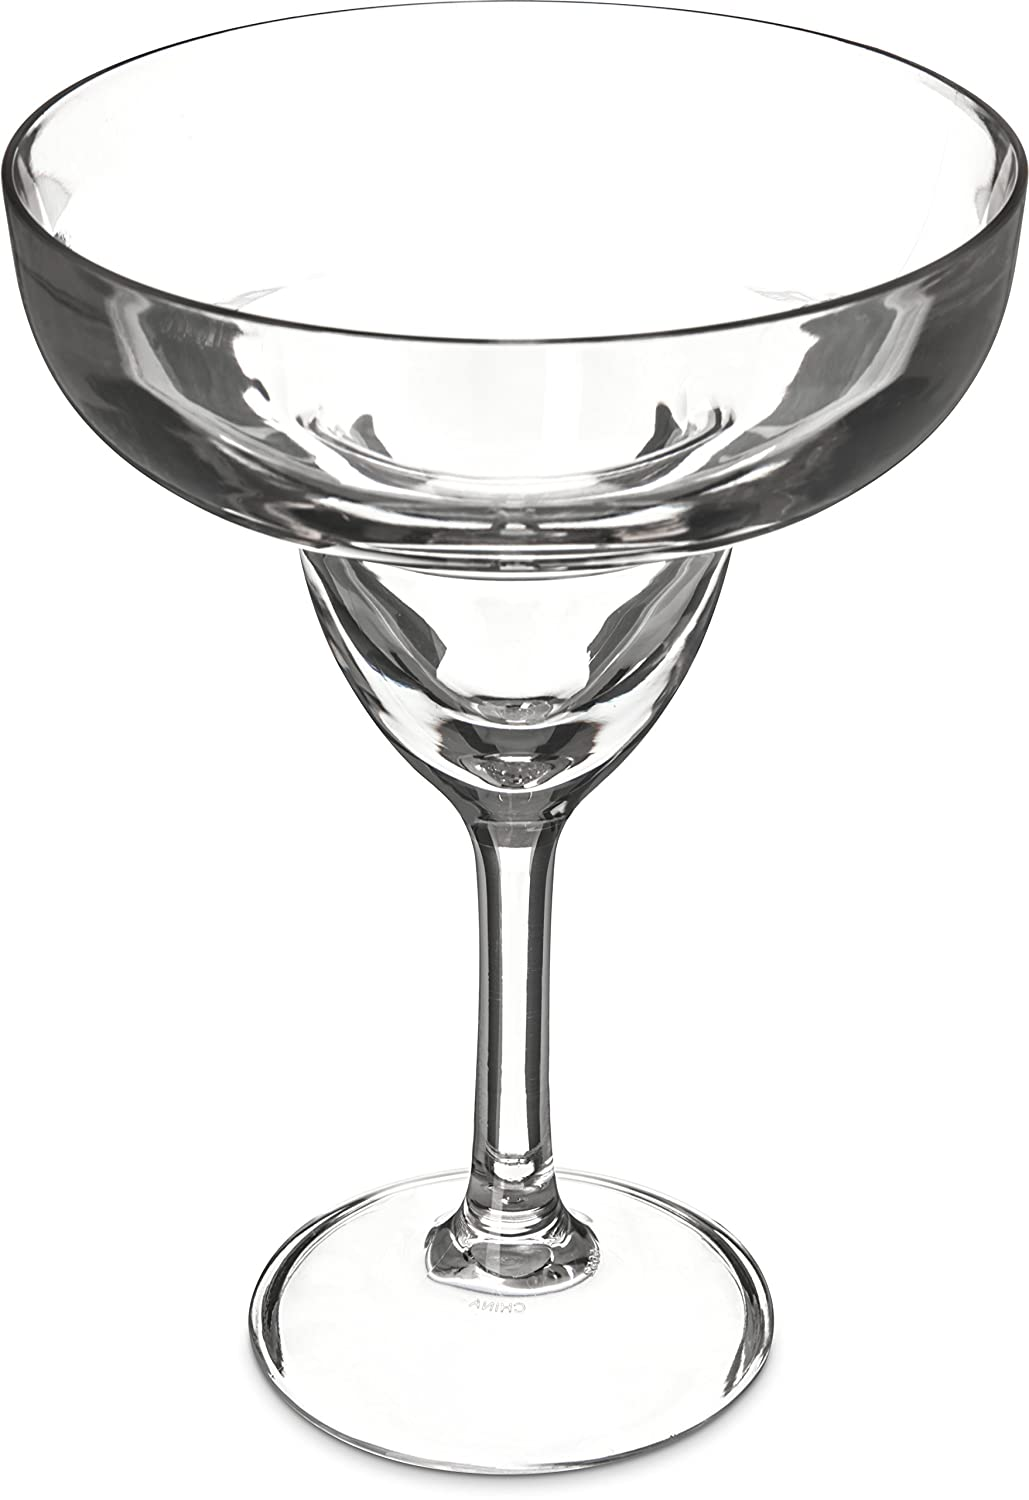 Carlisle 565207 Shatter-Resistant Plastic Margarita Glass, 16 Ounce, Clear (Pack of 24)